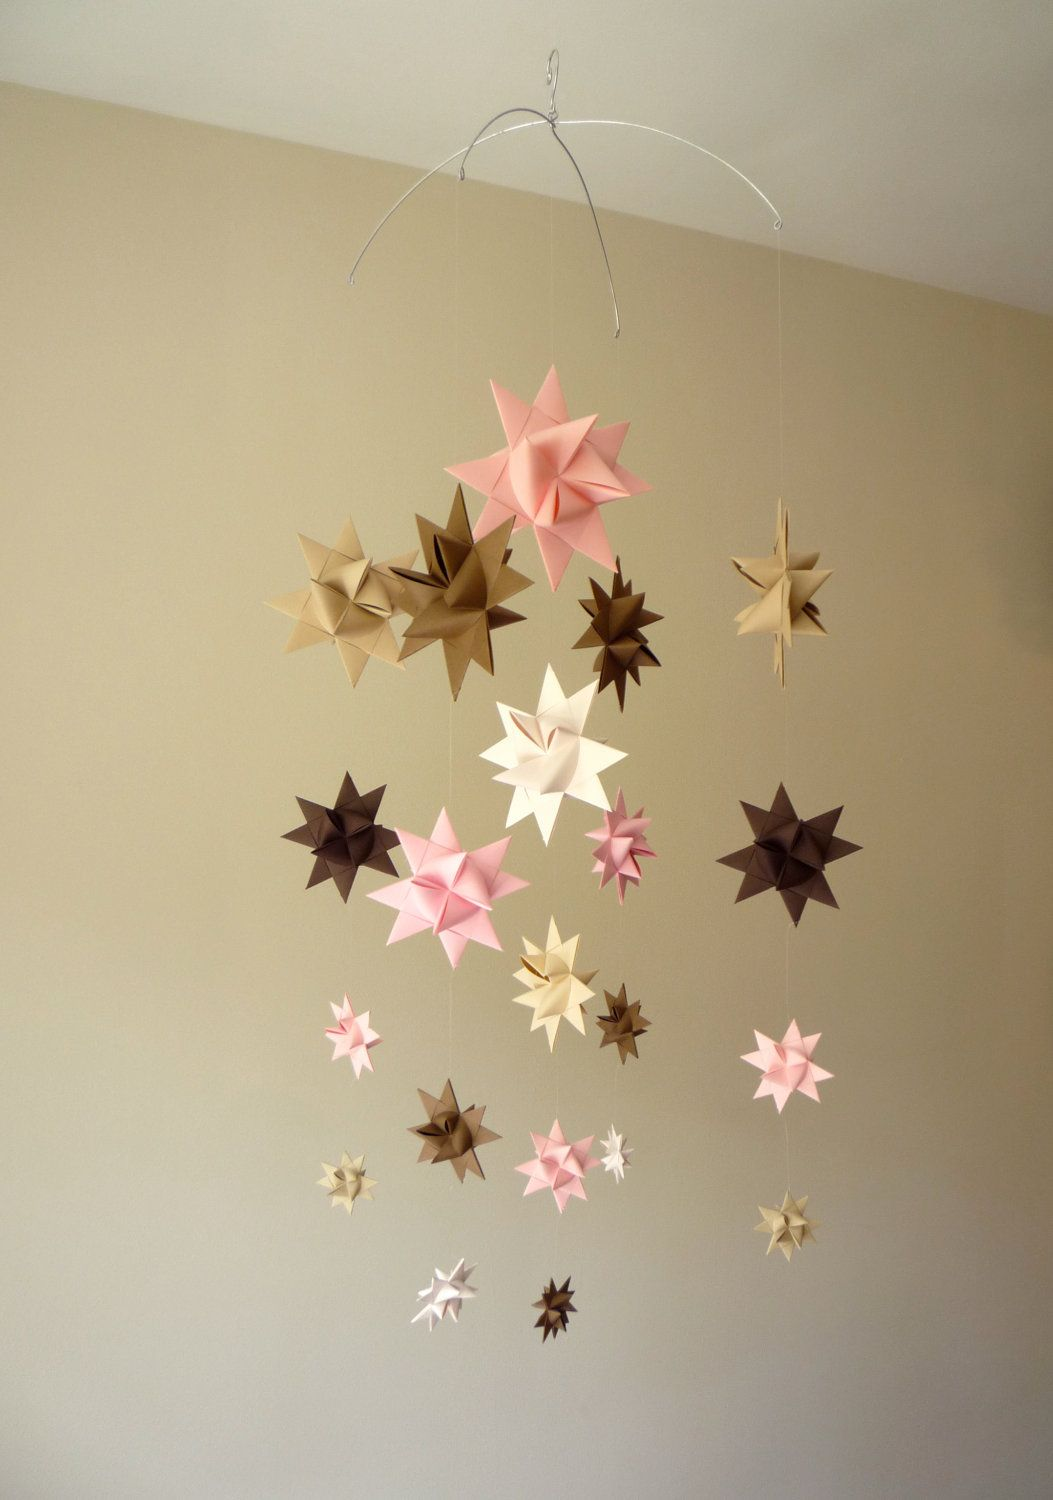 baby crib mobile hanging origami stars 39 pegasus 39 pinks and browns 68 00 via etsy origami. Black Bedroom Furniture Sets. Home Design Ideas